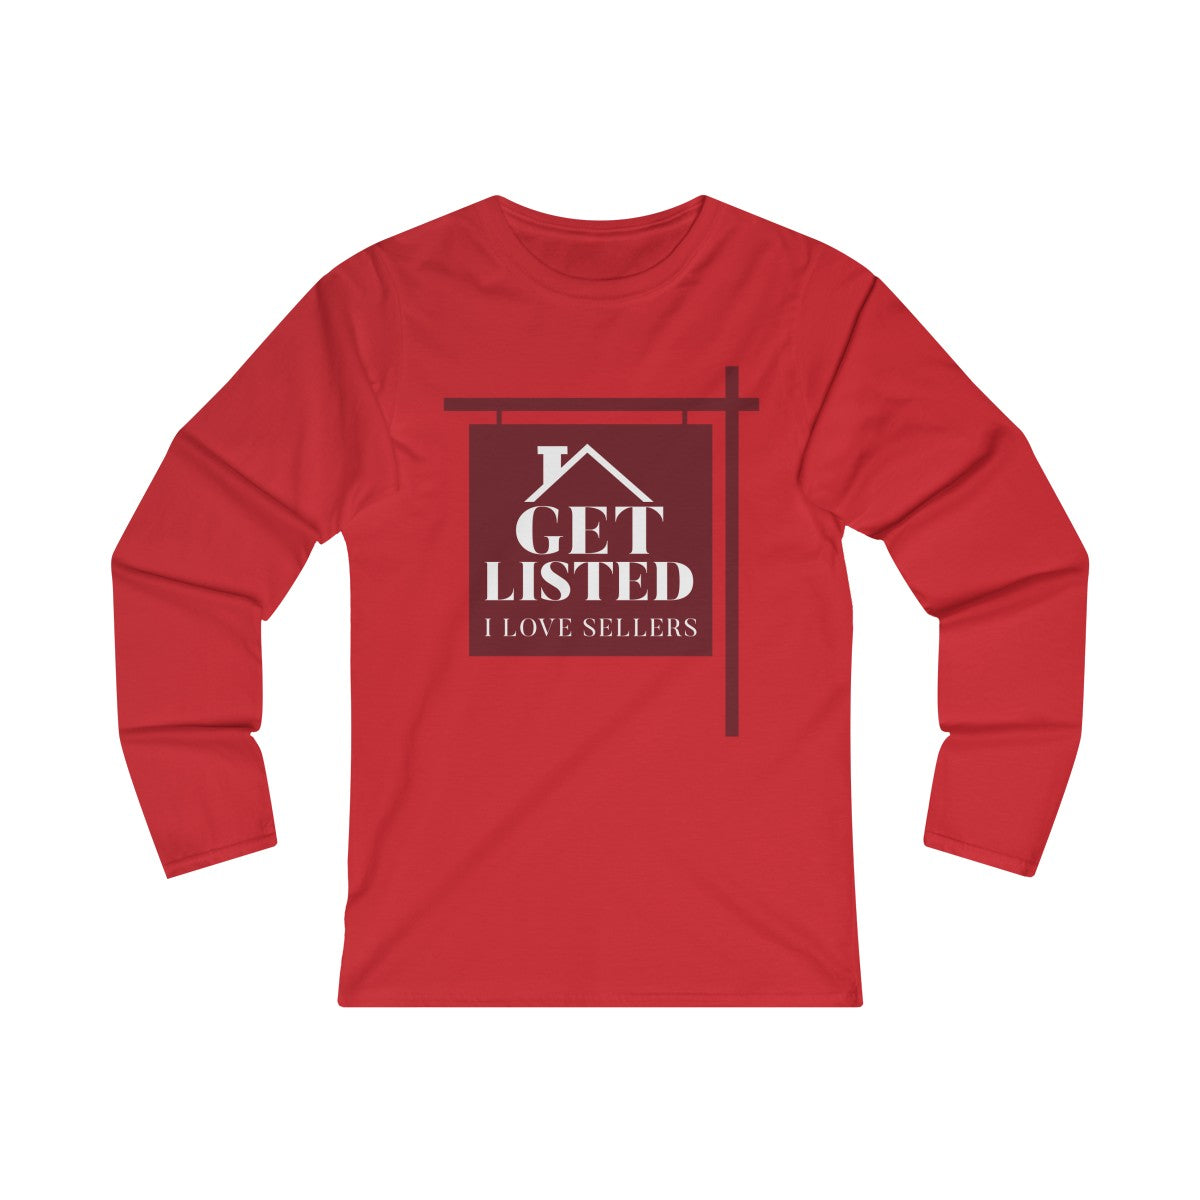 Get Listed! I Love Sellers™ Long Sleeve Tee